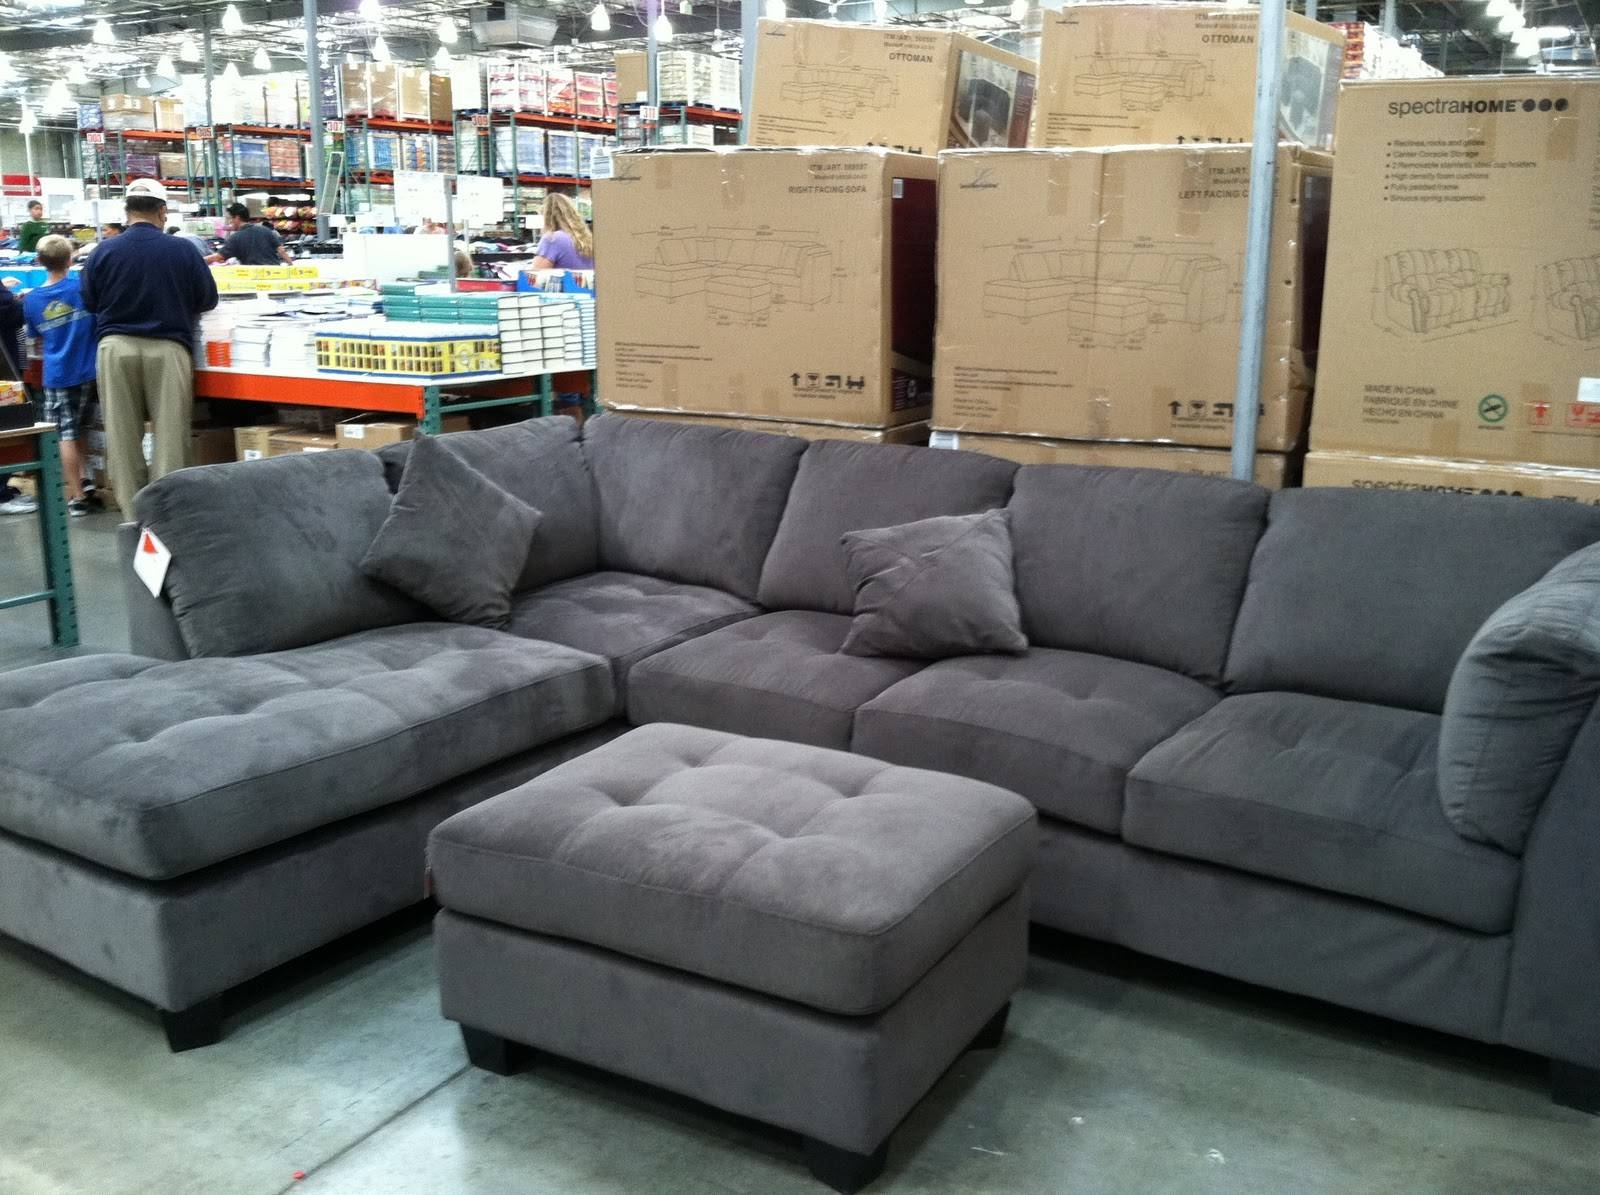 Amusing Multi Piece Sectional Sofa 95 On 6 Piece Modular Sectional for 6 Piece Leather Sectional Sofa (Image 7 of 30)